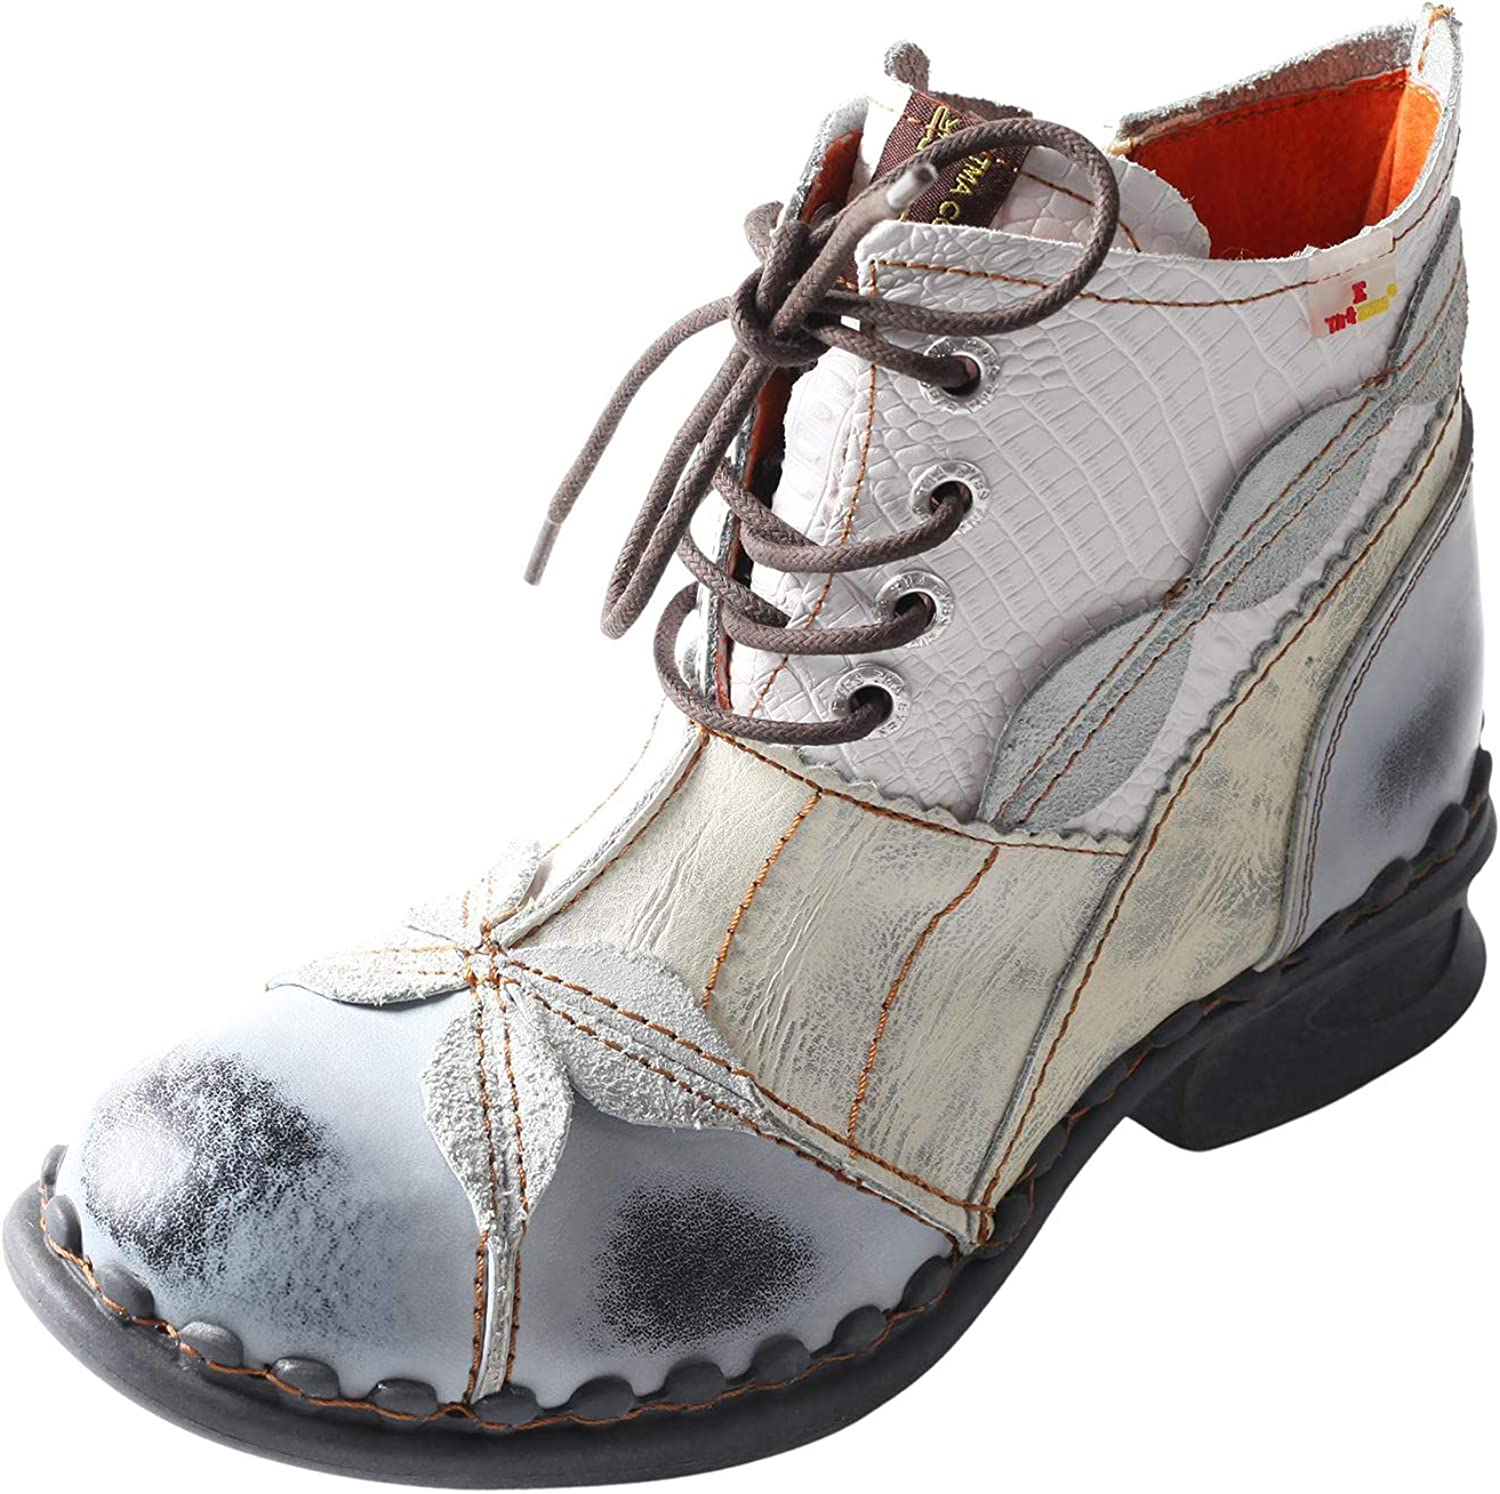 TMA EYES Brand Washed Leather Award Oxford Women's Boots Mother Shoes Cheap mail order shopping